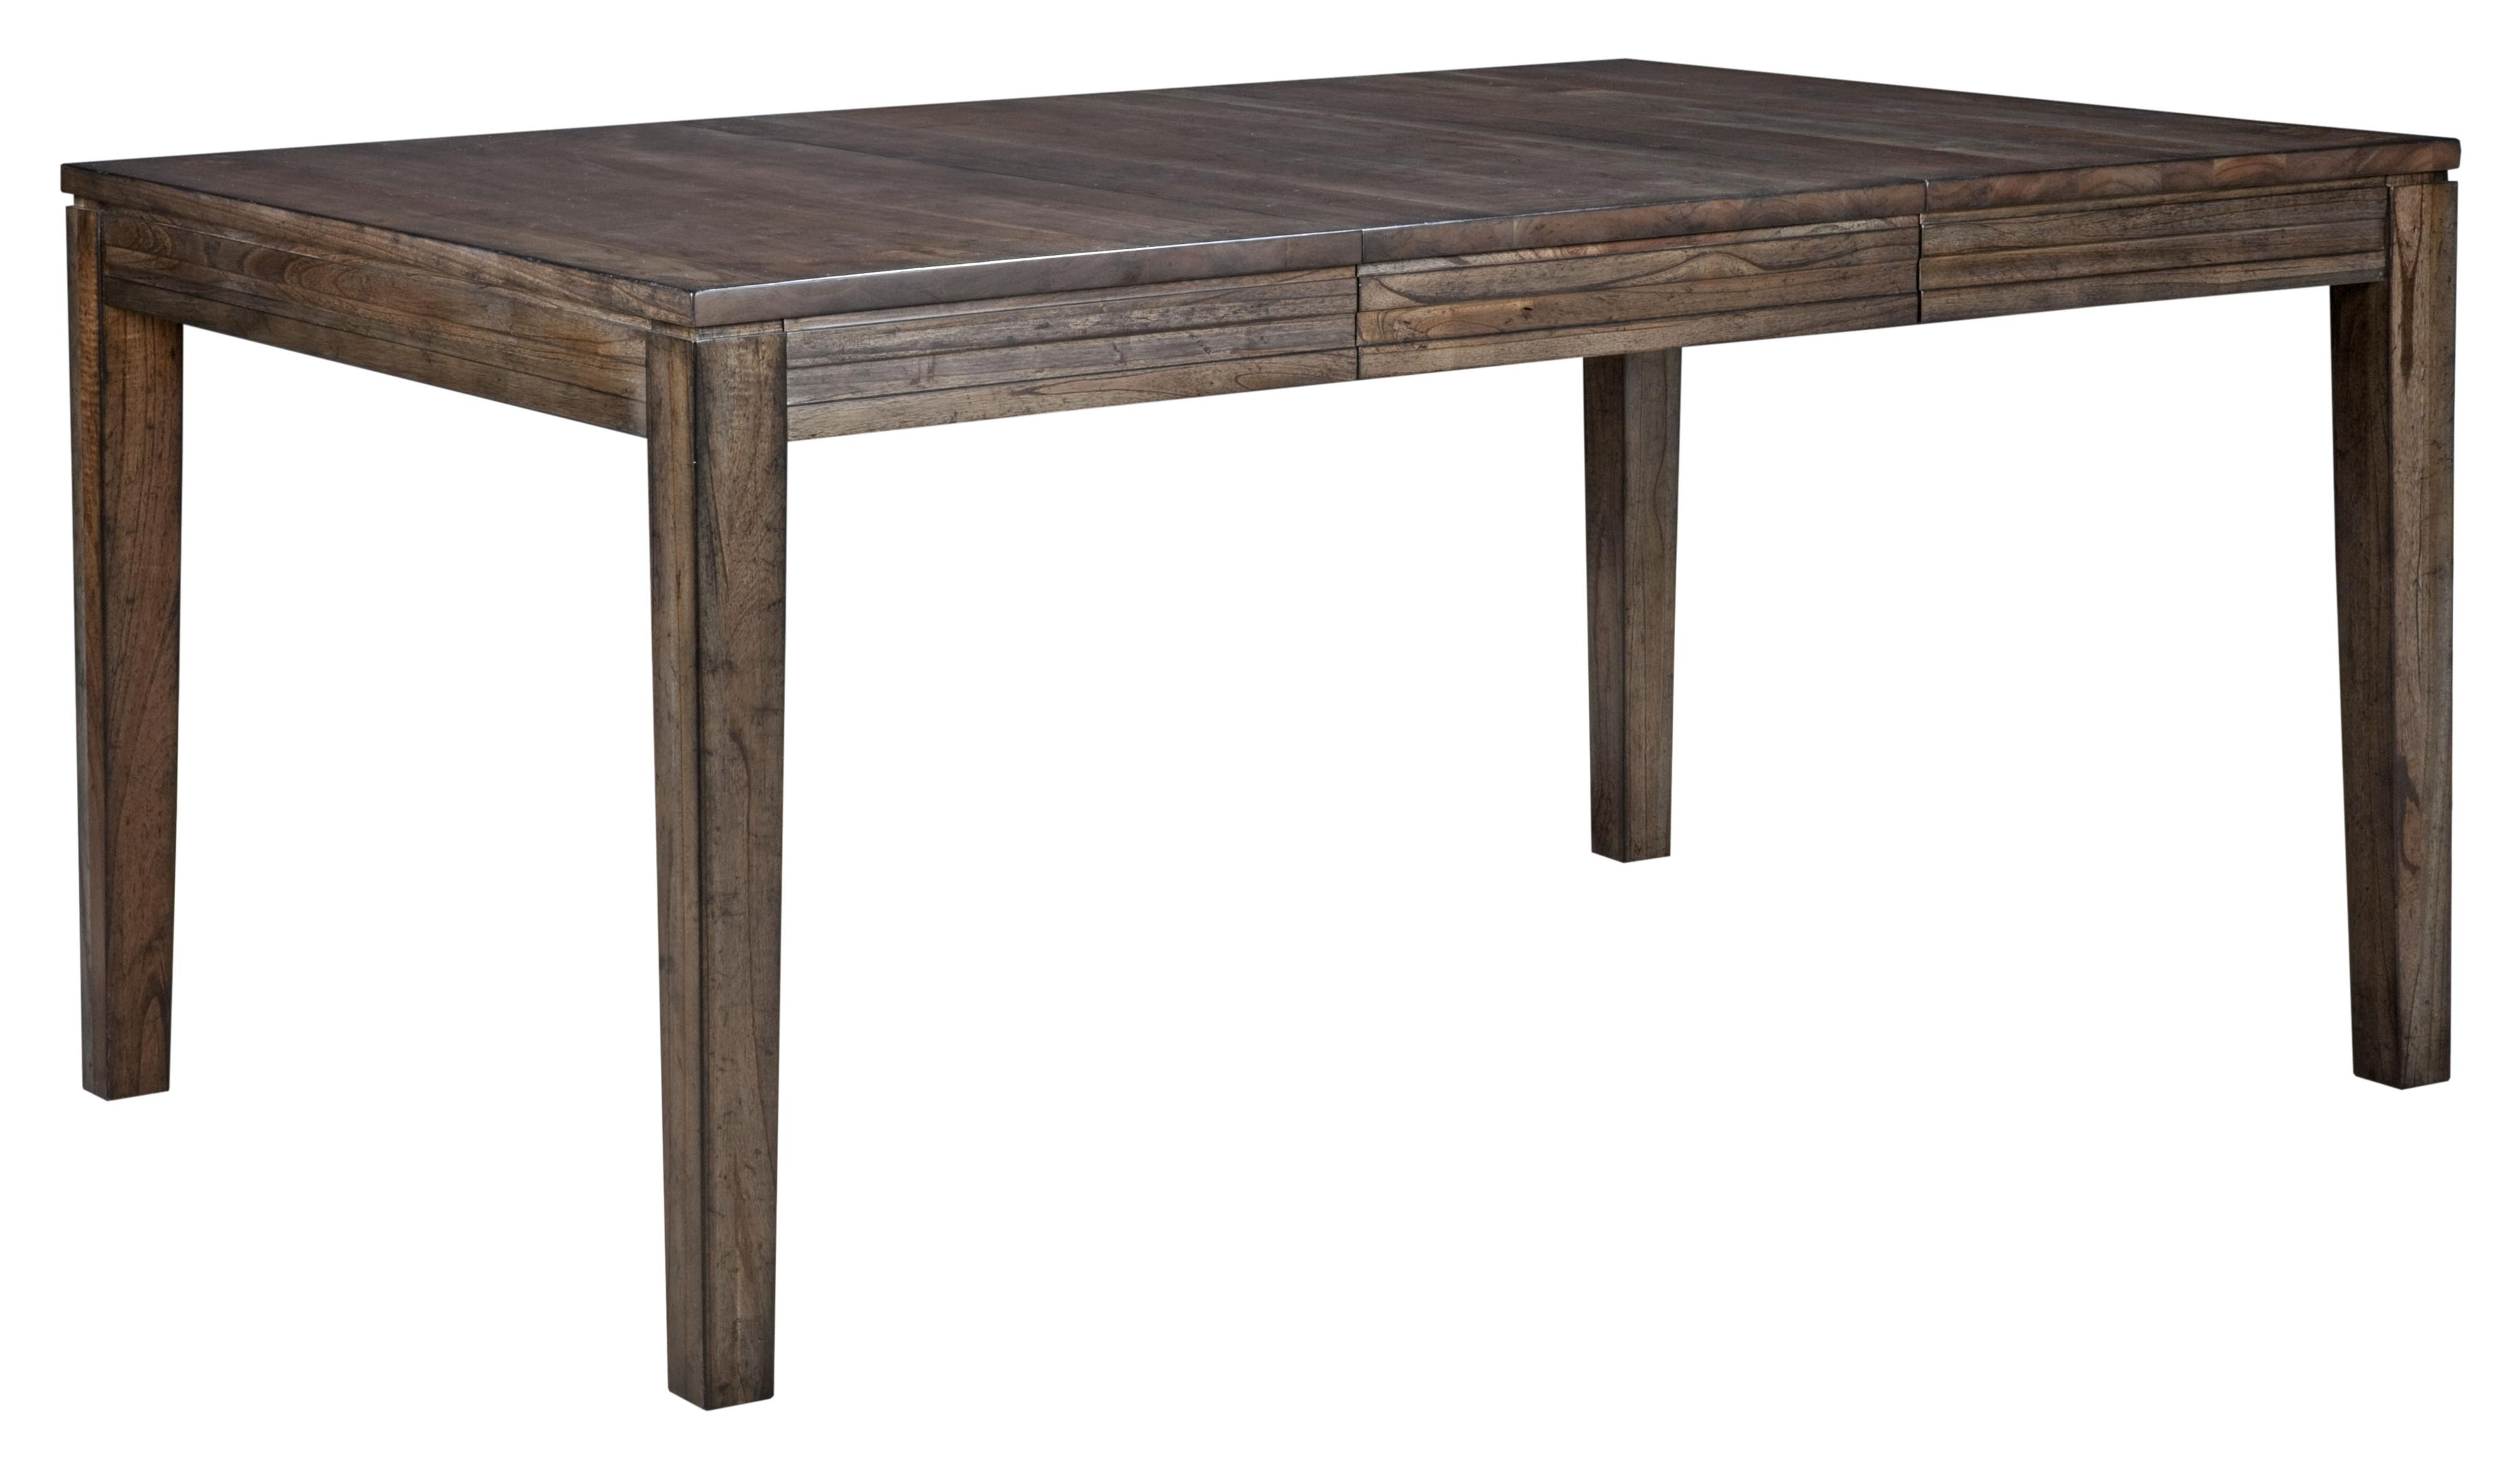 Kincaid Furniture Montreat Cornerstone Dining Table - Item Number: 84-054